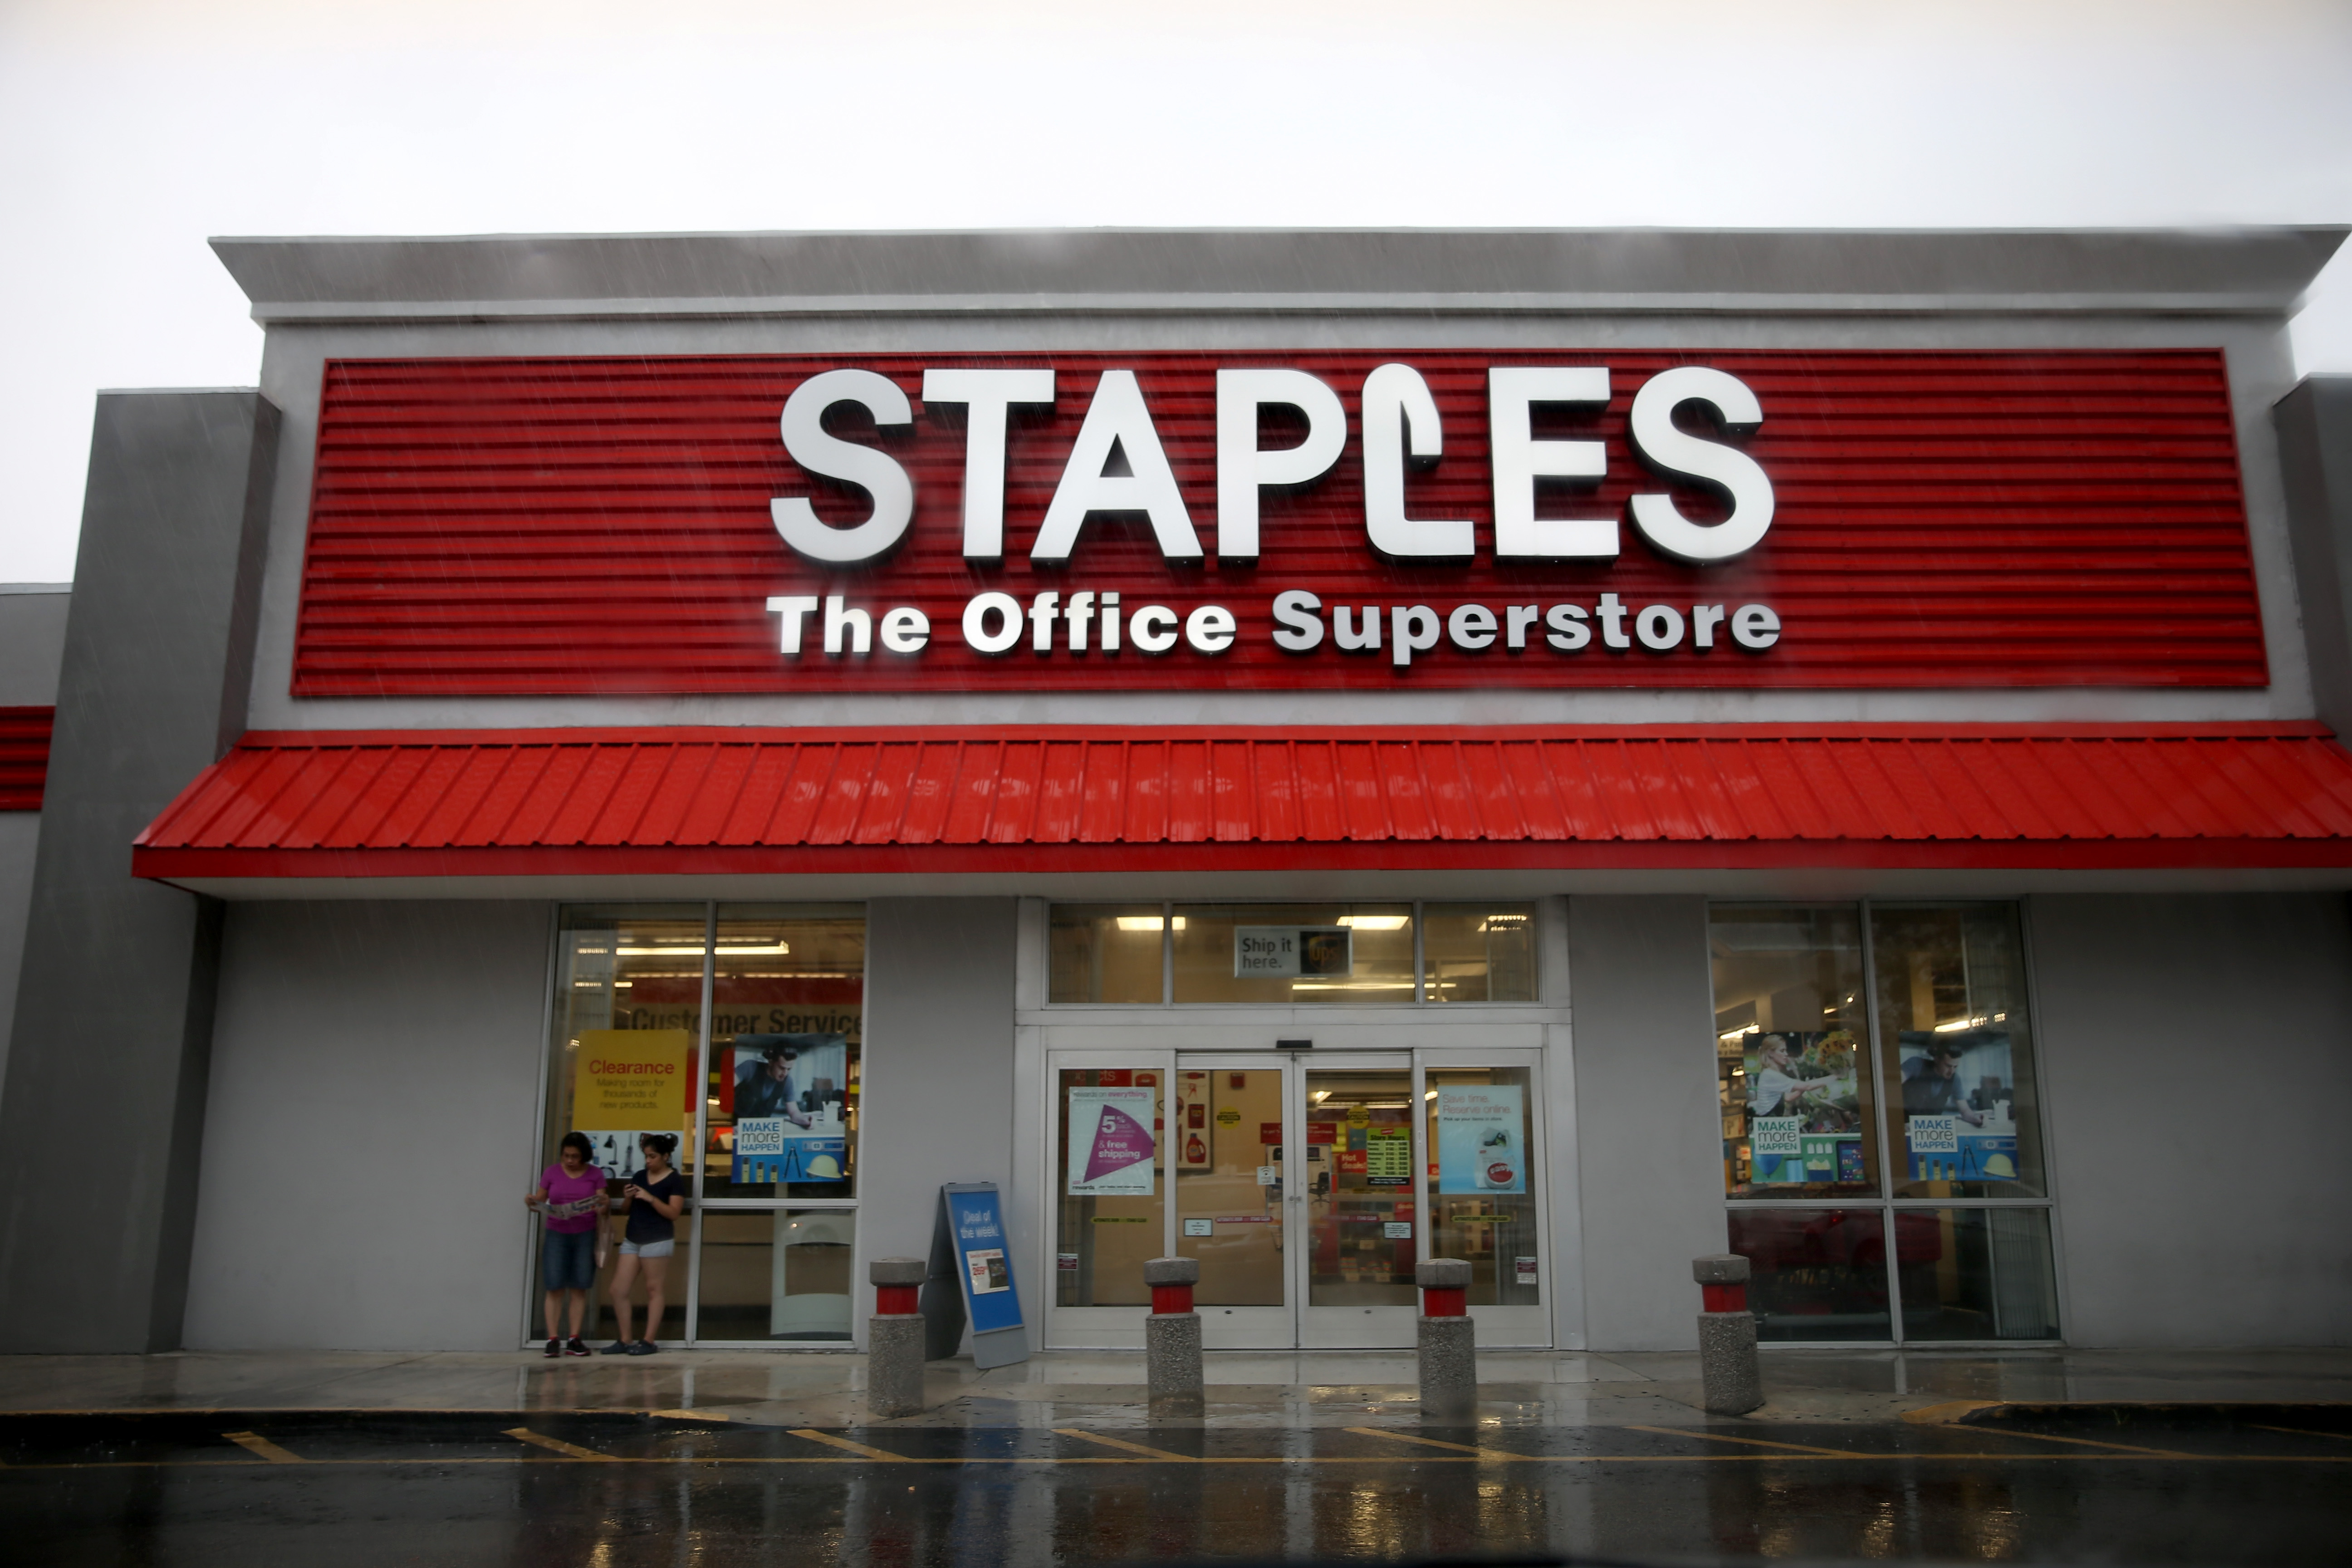 A Staples store is seen on March 6, 2014 in Miami, Florida.